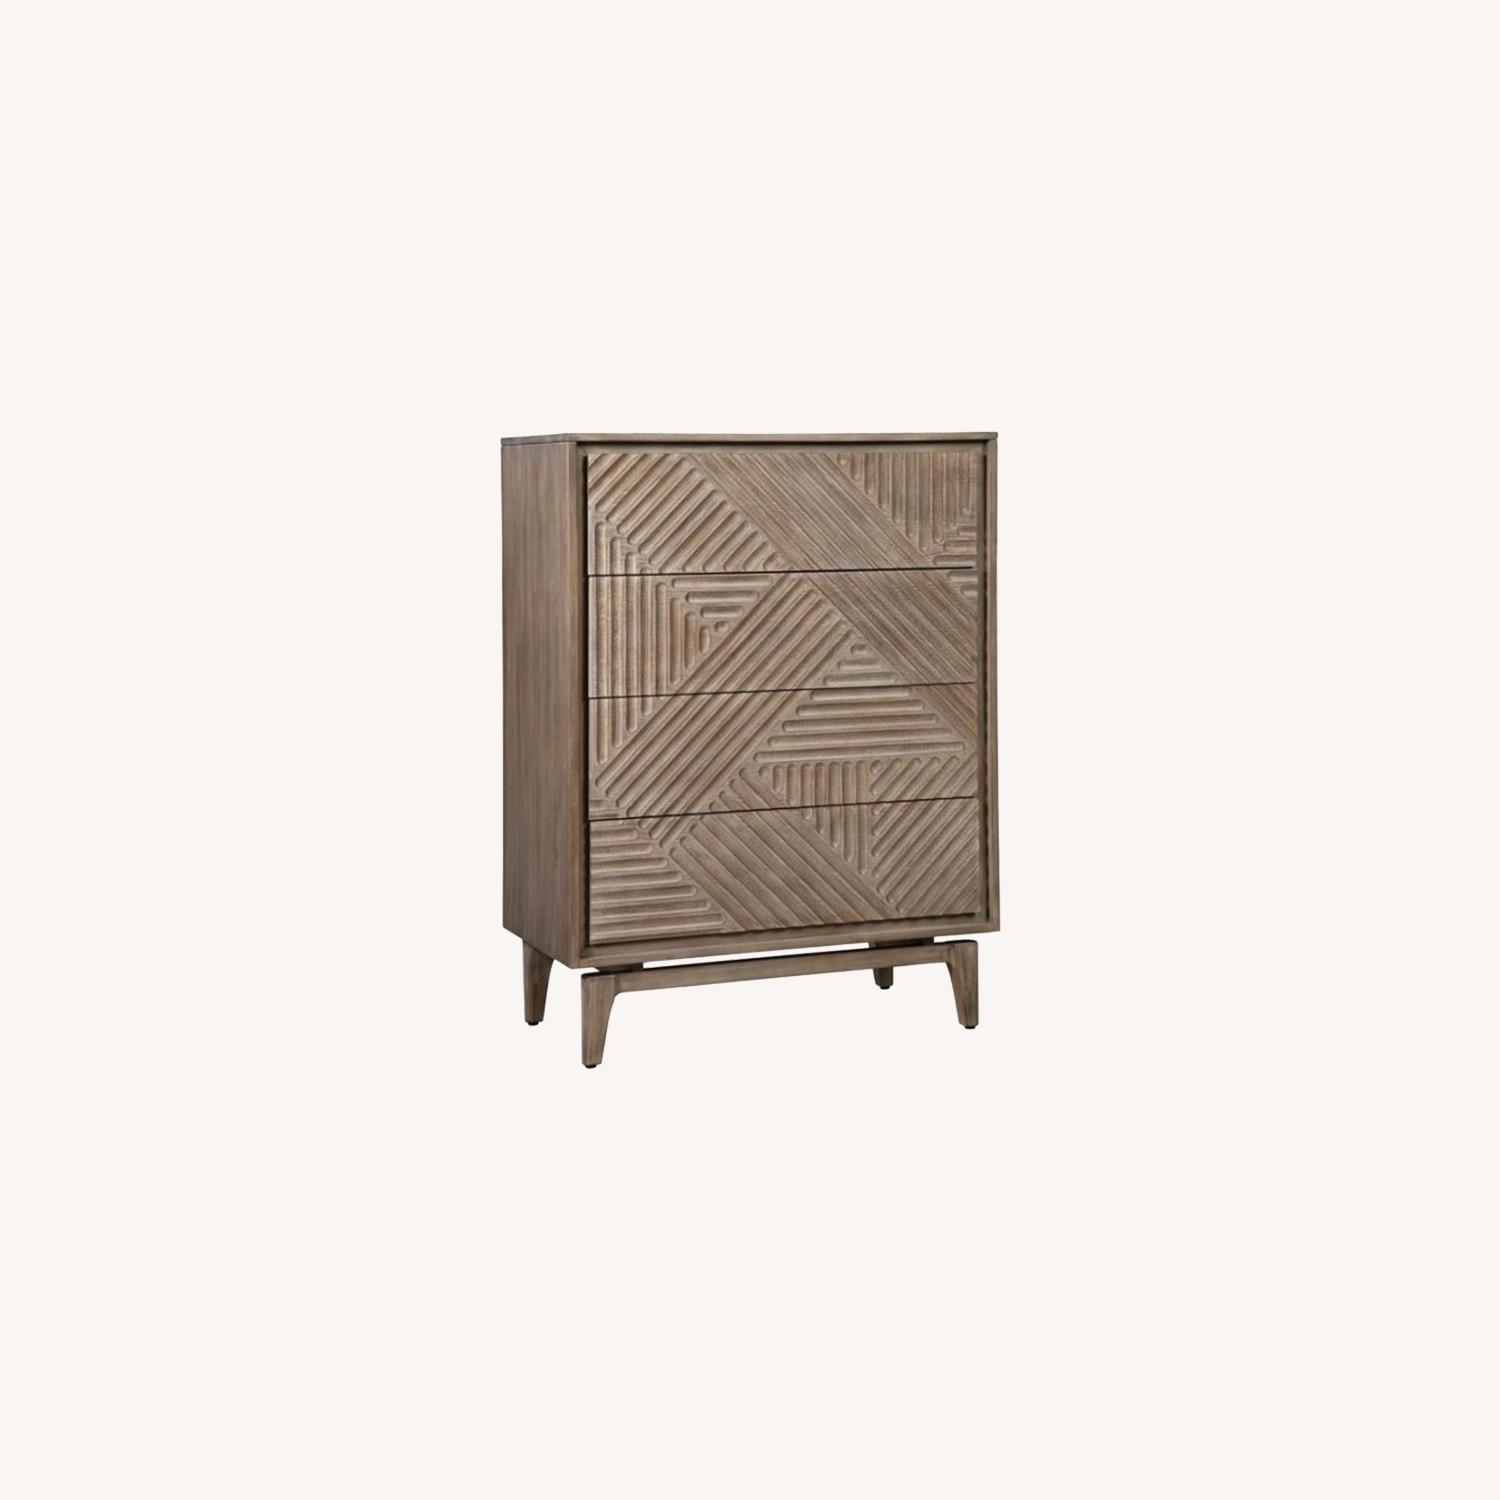 Modern Chest In Sandstone Finish W/ Unique Design - image-4